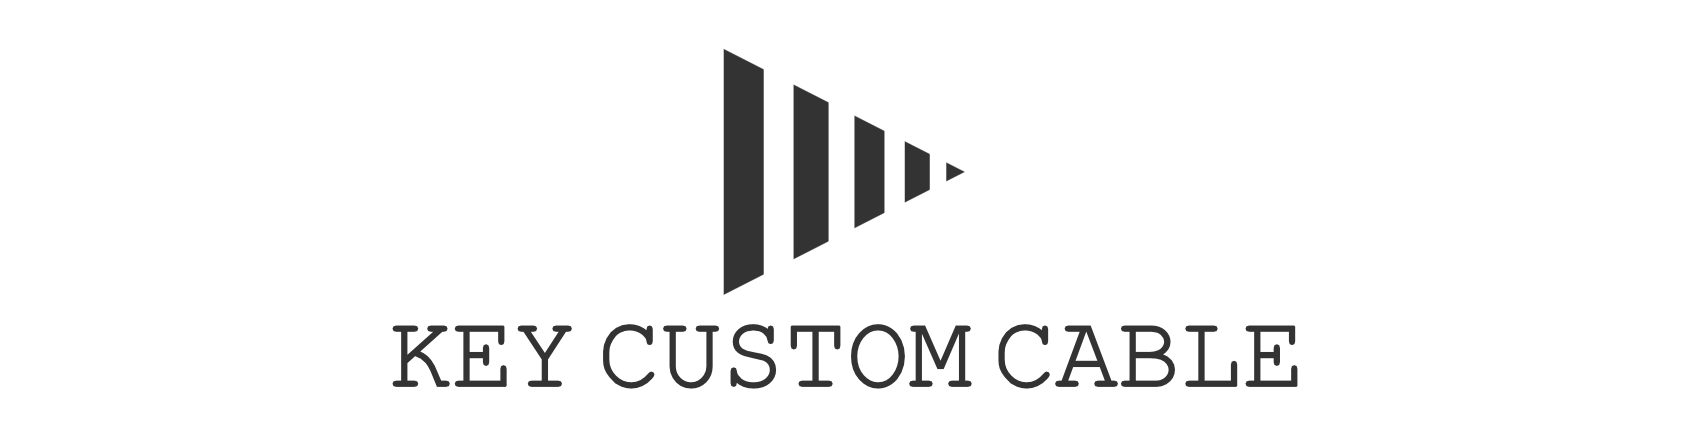 KEY CUSTOM CABLE